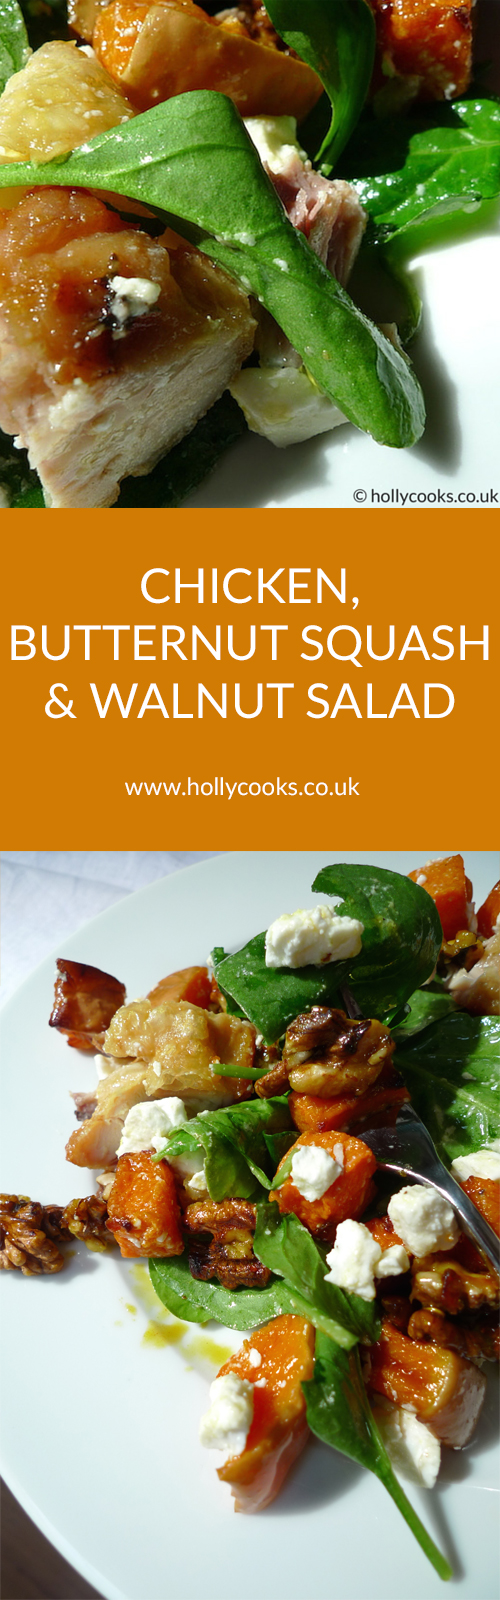 chicken, butternut squash and walnut salad